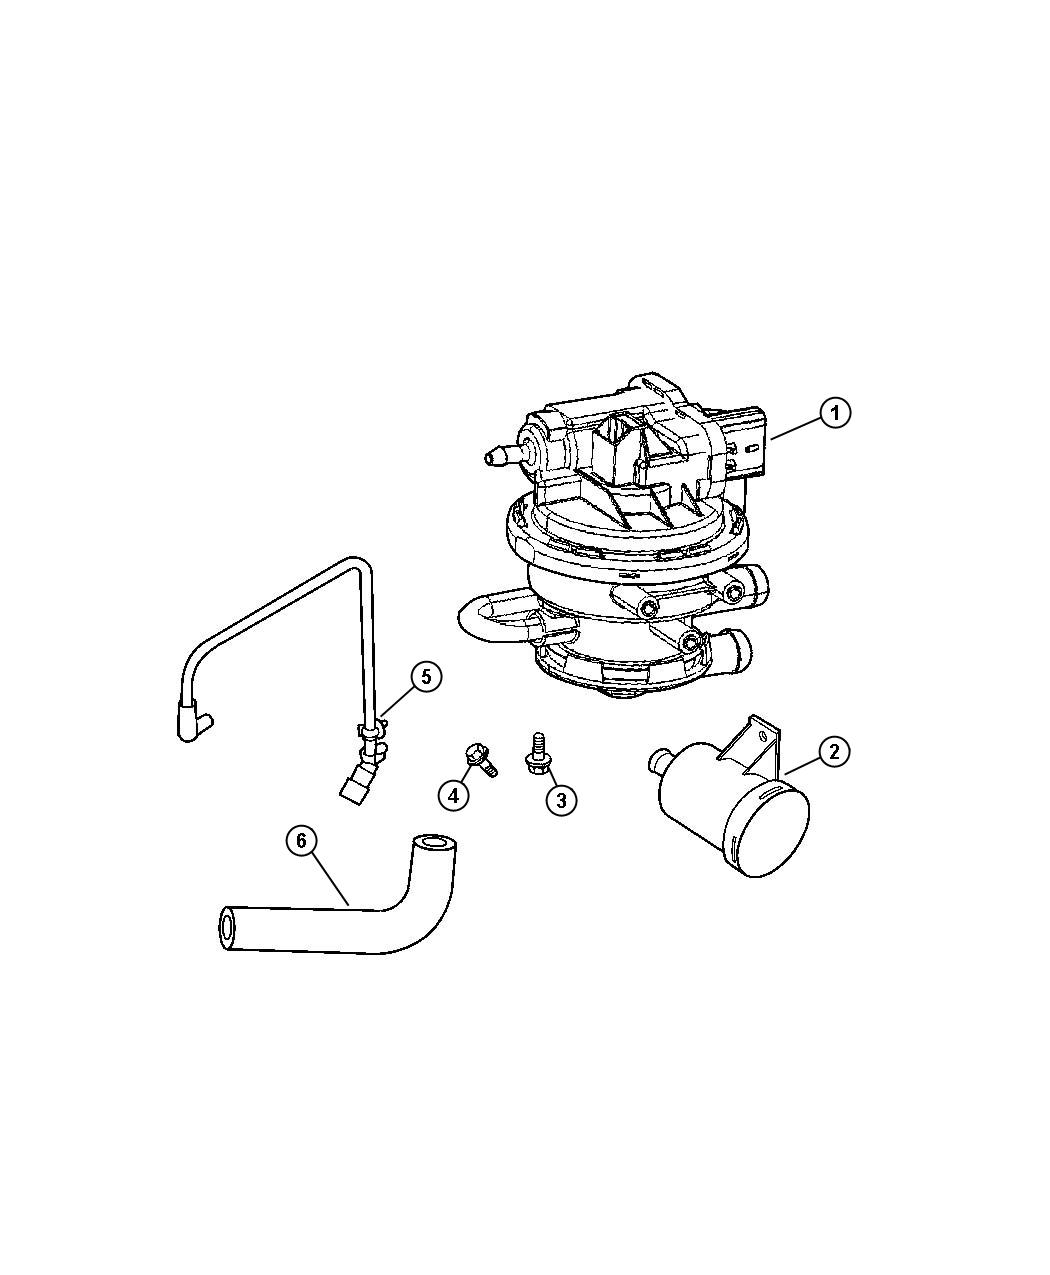 top suggestions 1999 dodge caravan 3 0 belt diagram :